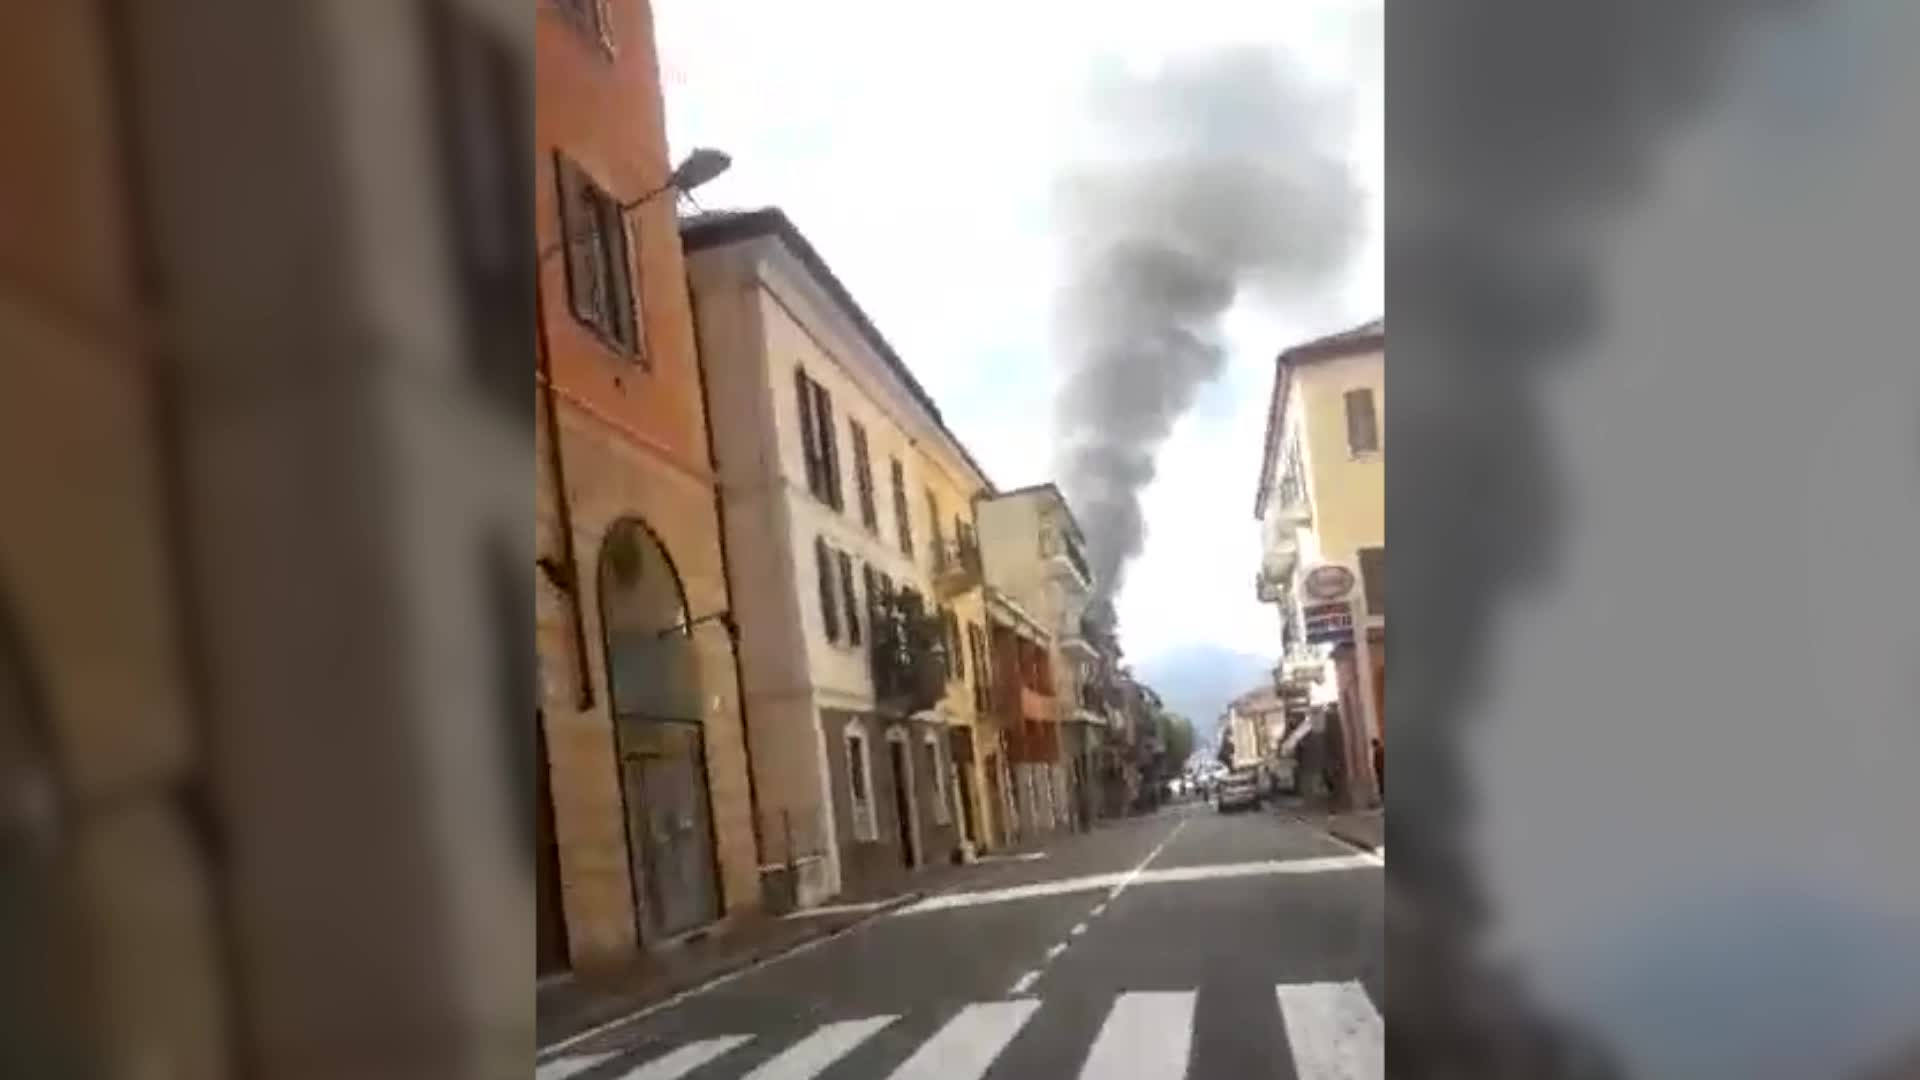 Video: Brucia la Gioeubia di Cavaria